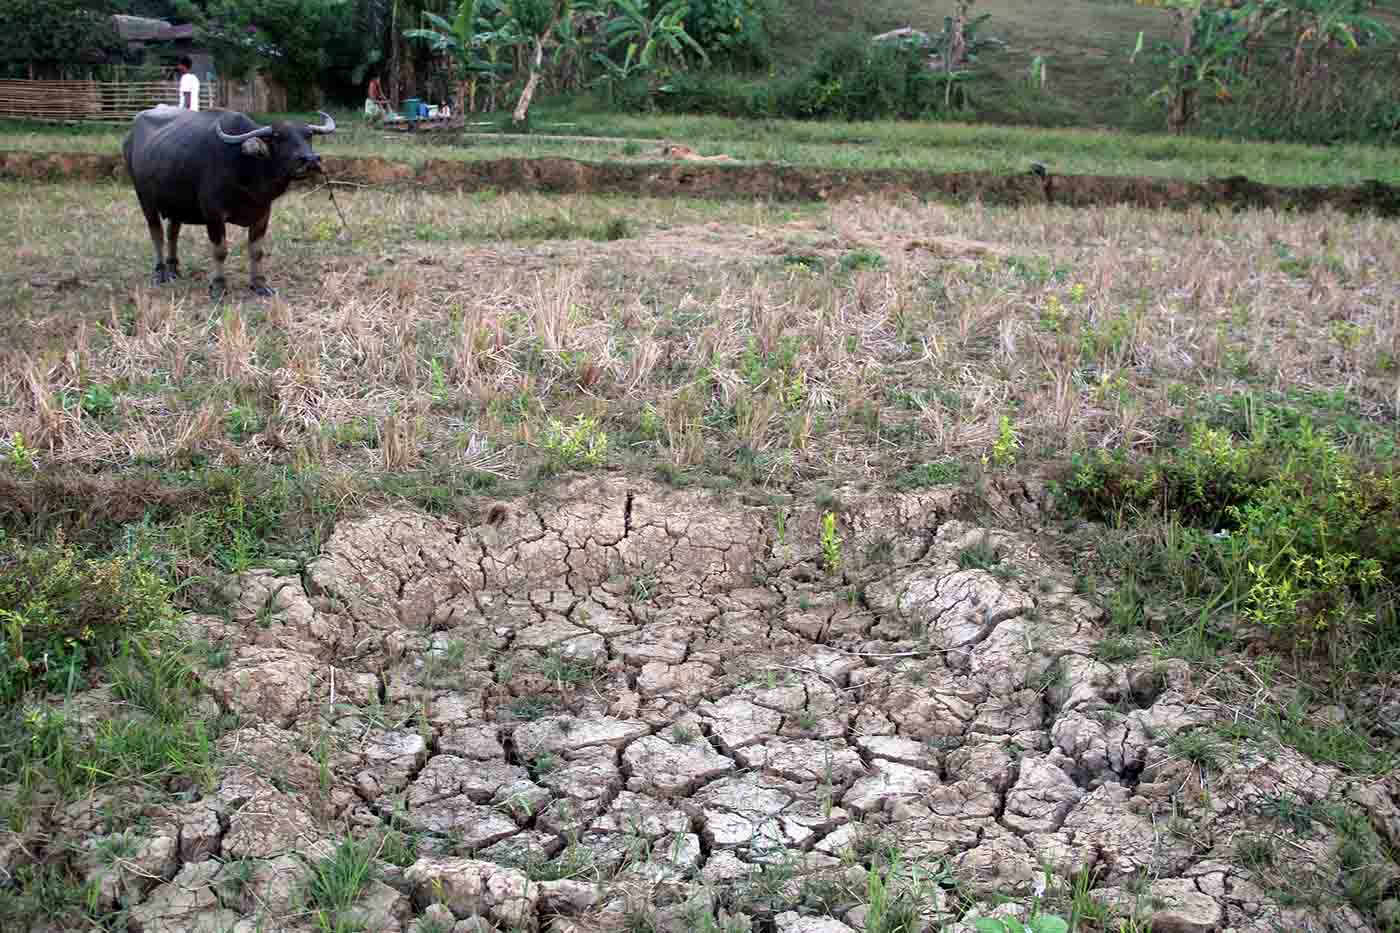 A riceland in Bacacay, Albay turned barren due to drought. Photo by Rhaydz Barcia/Rappler